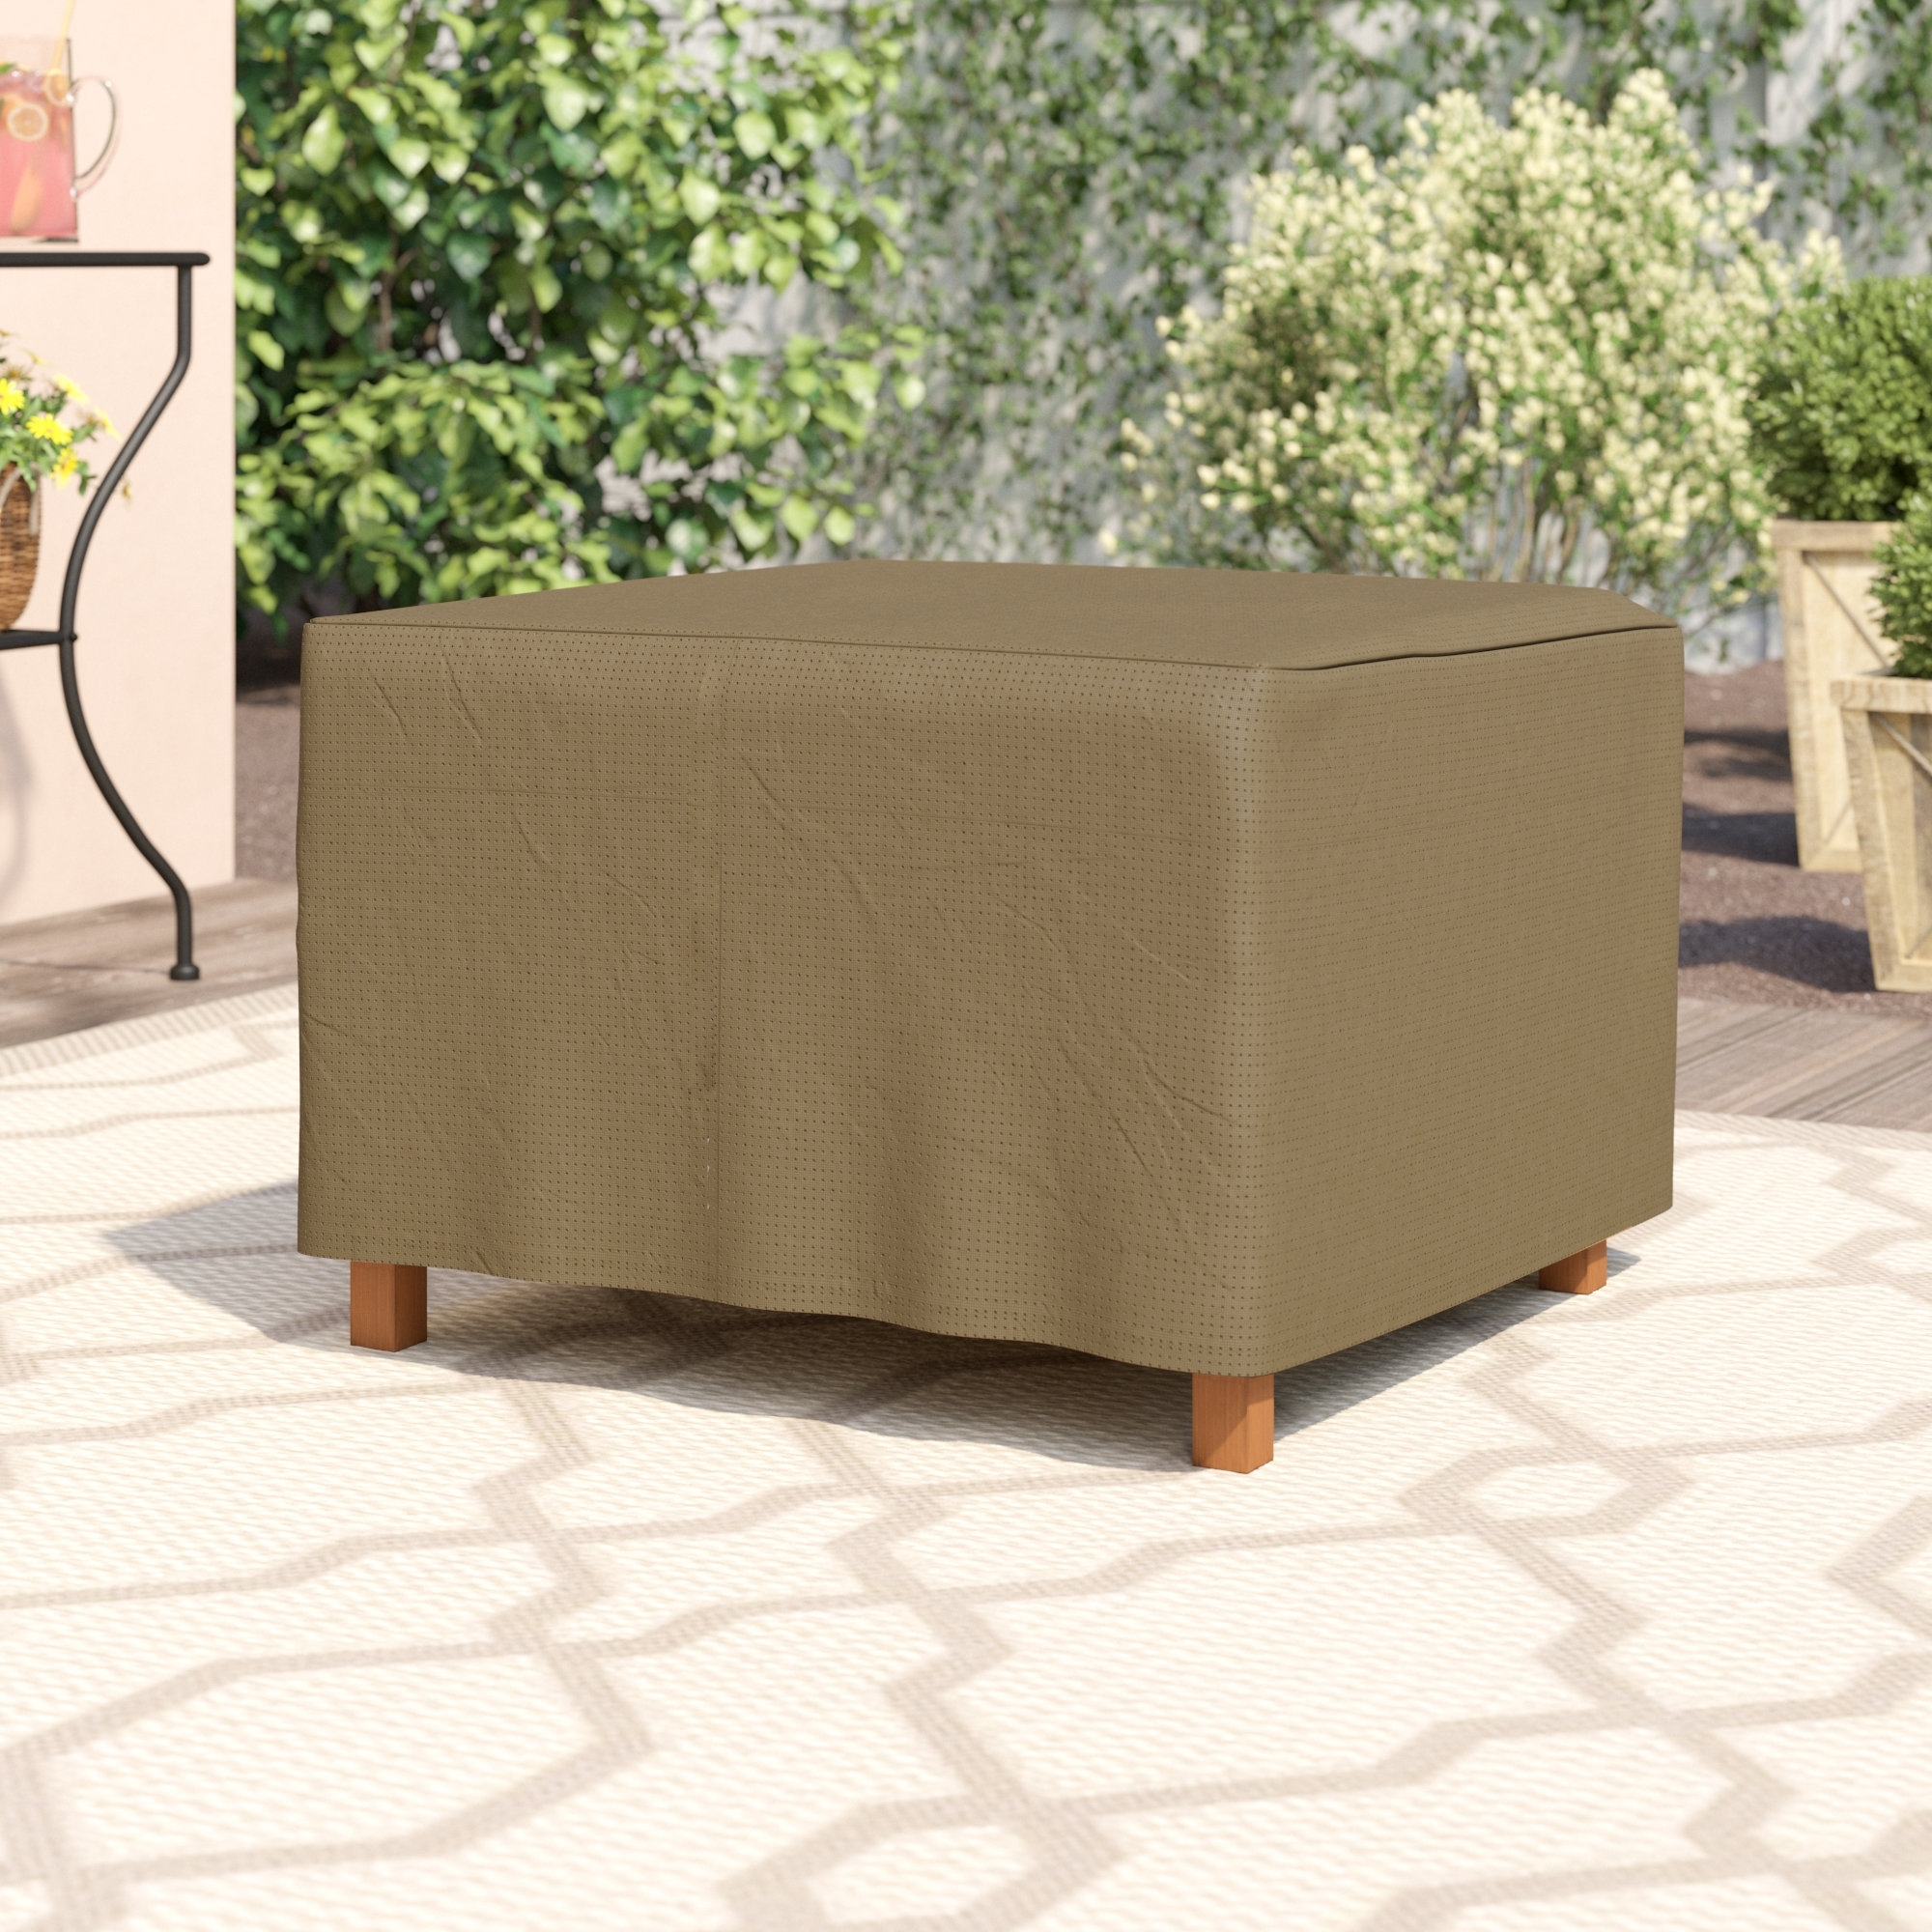 Best And Newest Casbah Coffee Side Tables With Amazing Side Table Cover Casbah Coffee Review C H Cloth With Fabric (View 3 of 20)